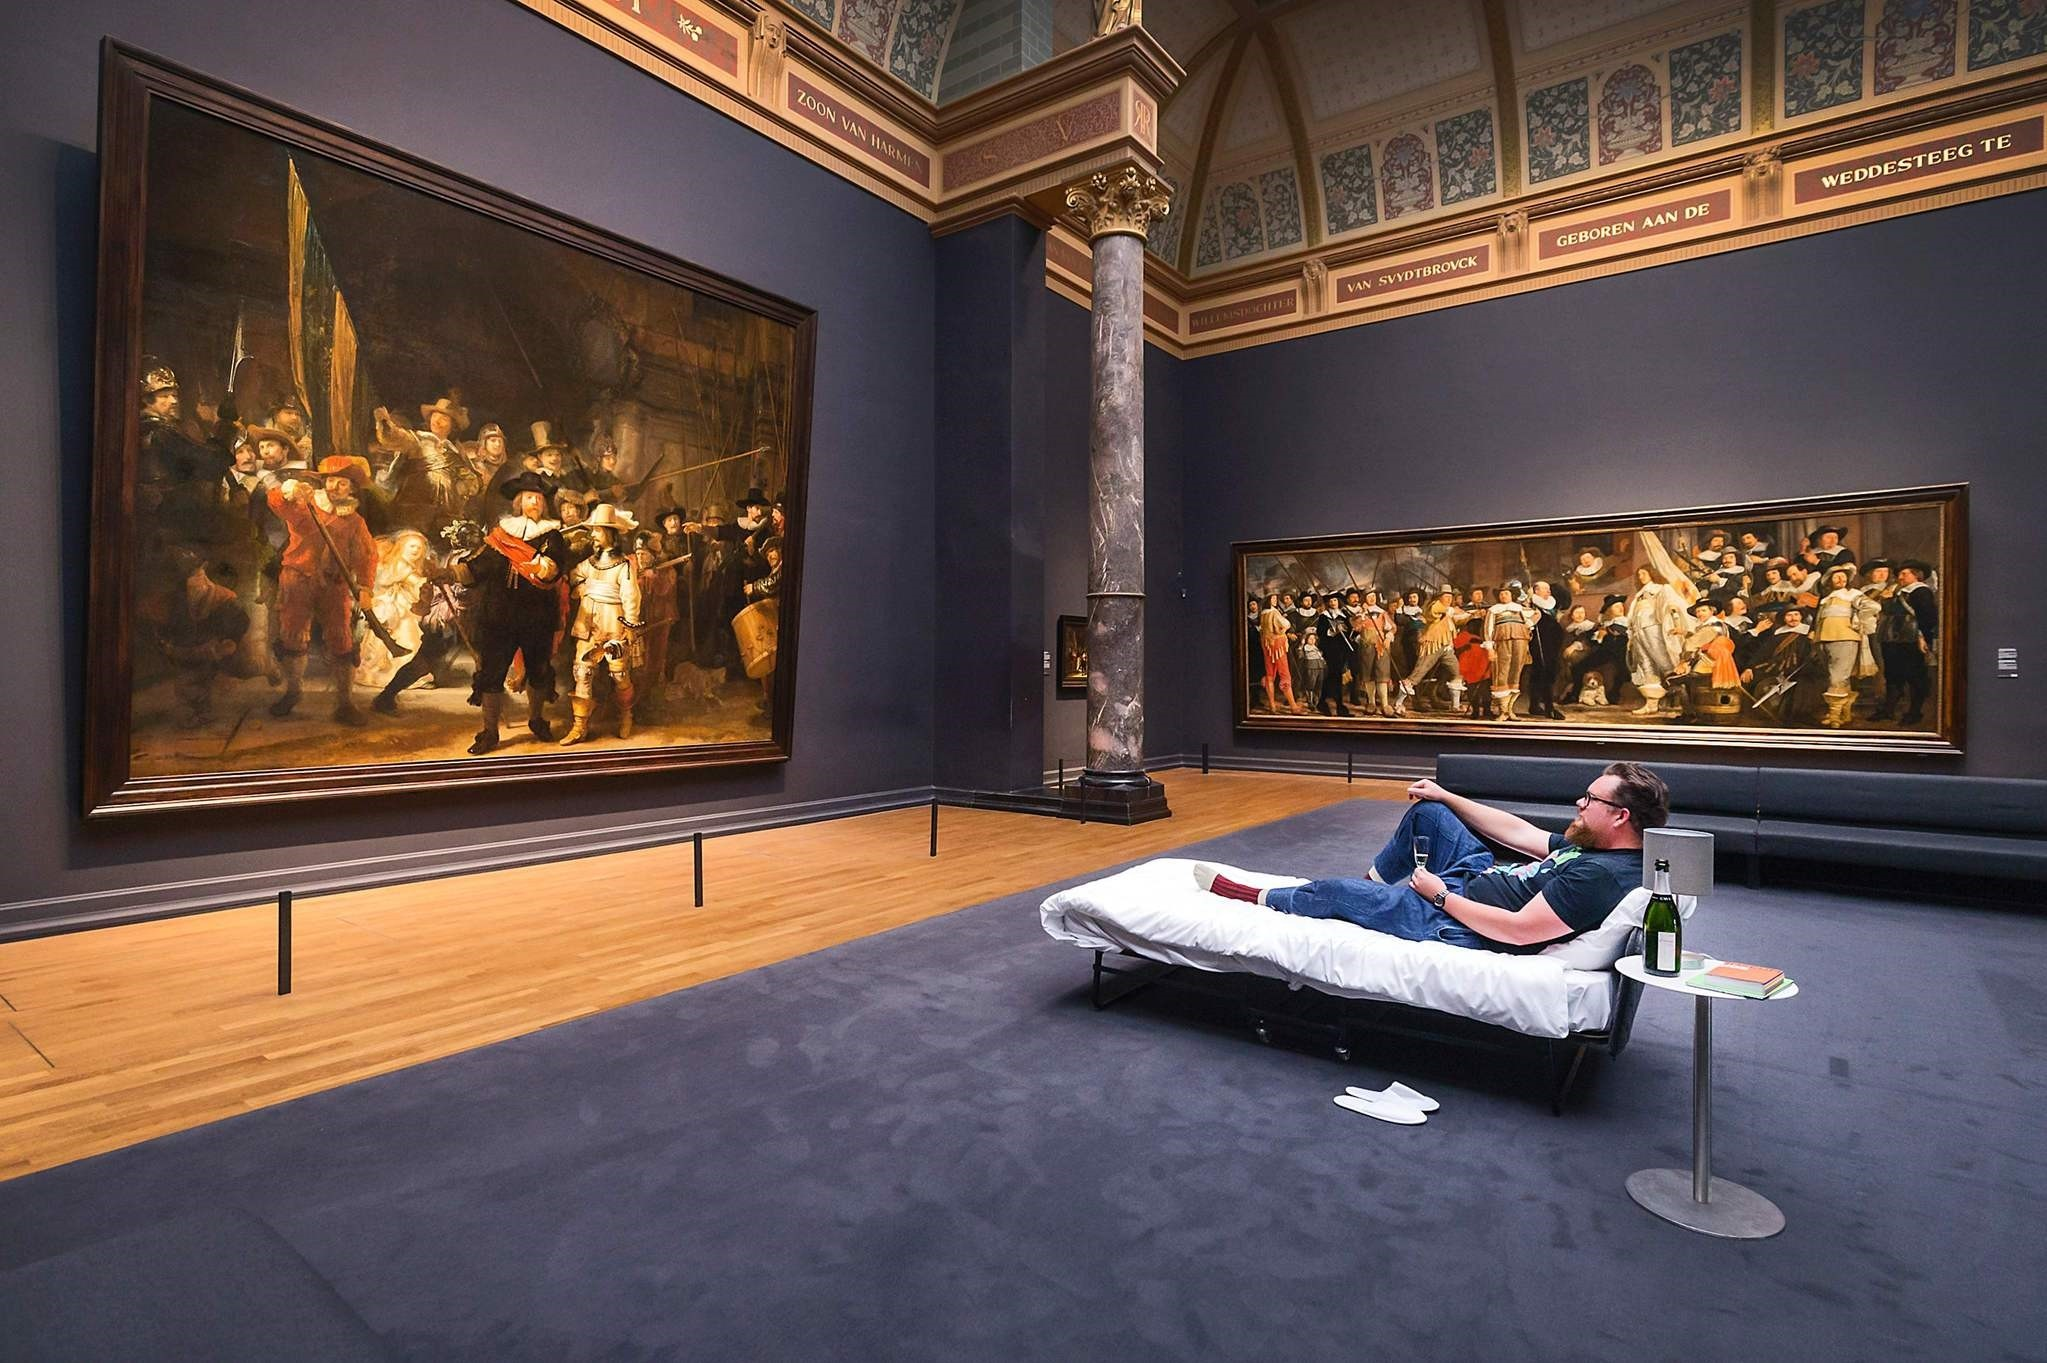 This handout picture released on June 2, 2017 by the Rijksmuseum of Amsterdam shows Stefan Kasper lying in a bed in front of the painting ,The Night Watch, by Dutch painter Rembrandt at the Rijksmuseum of Amsterdam on June 1, 2017. (AFP Photo)